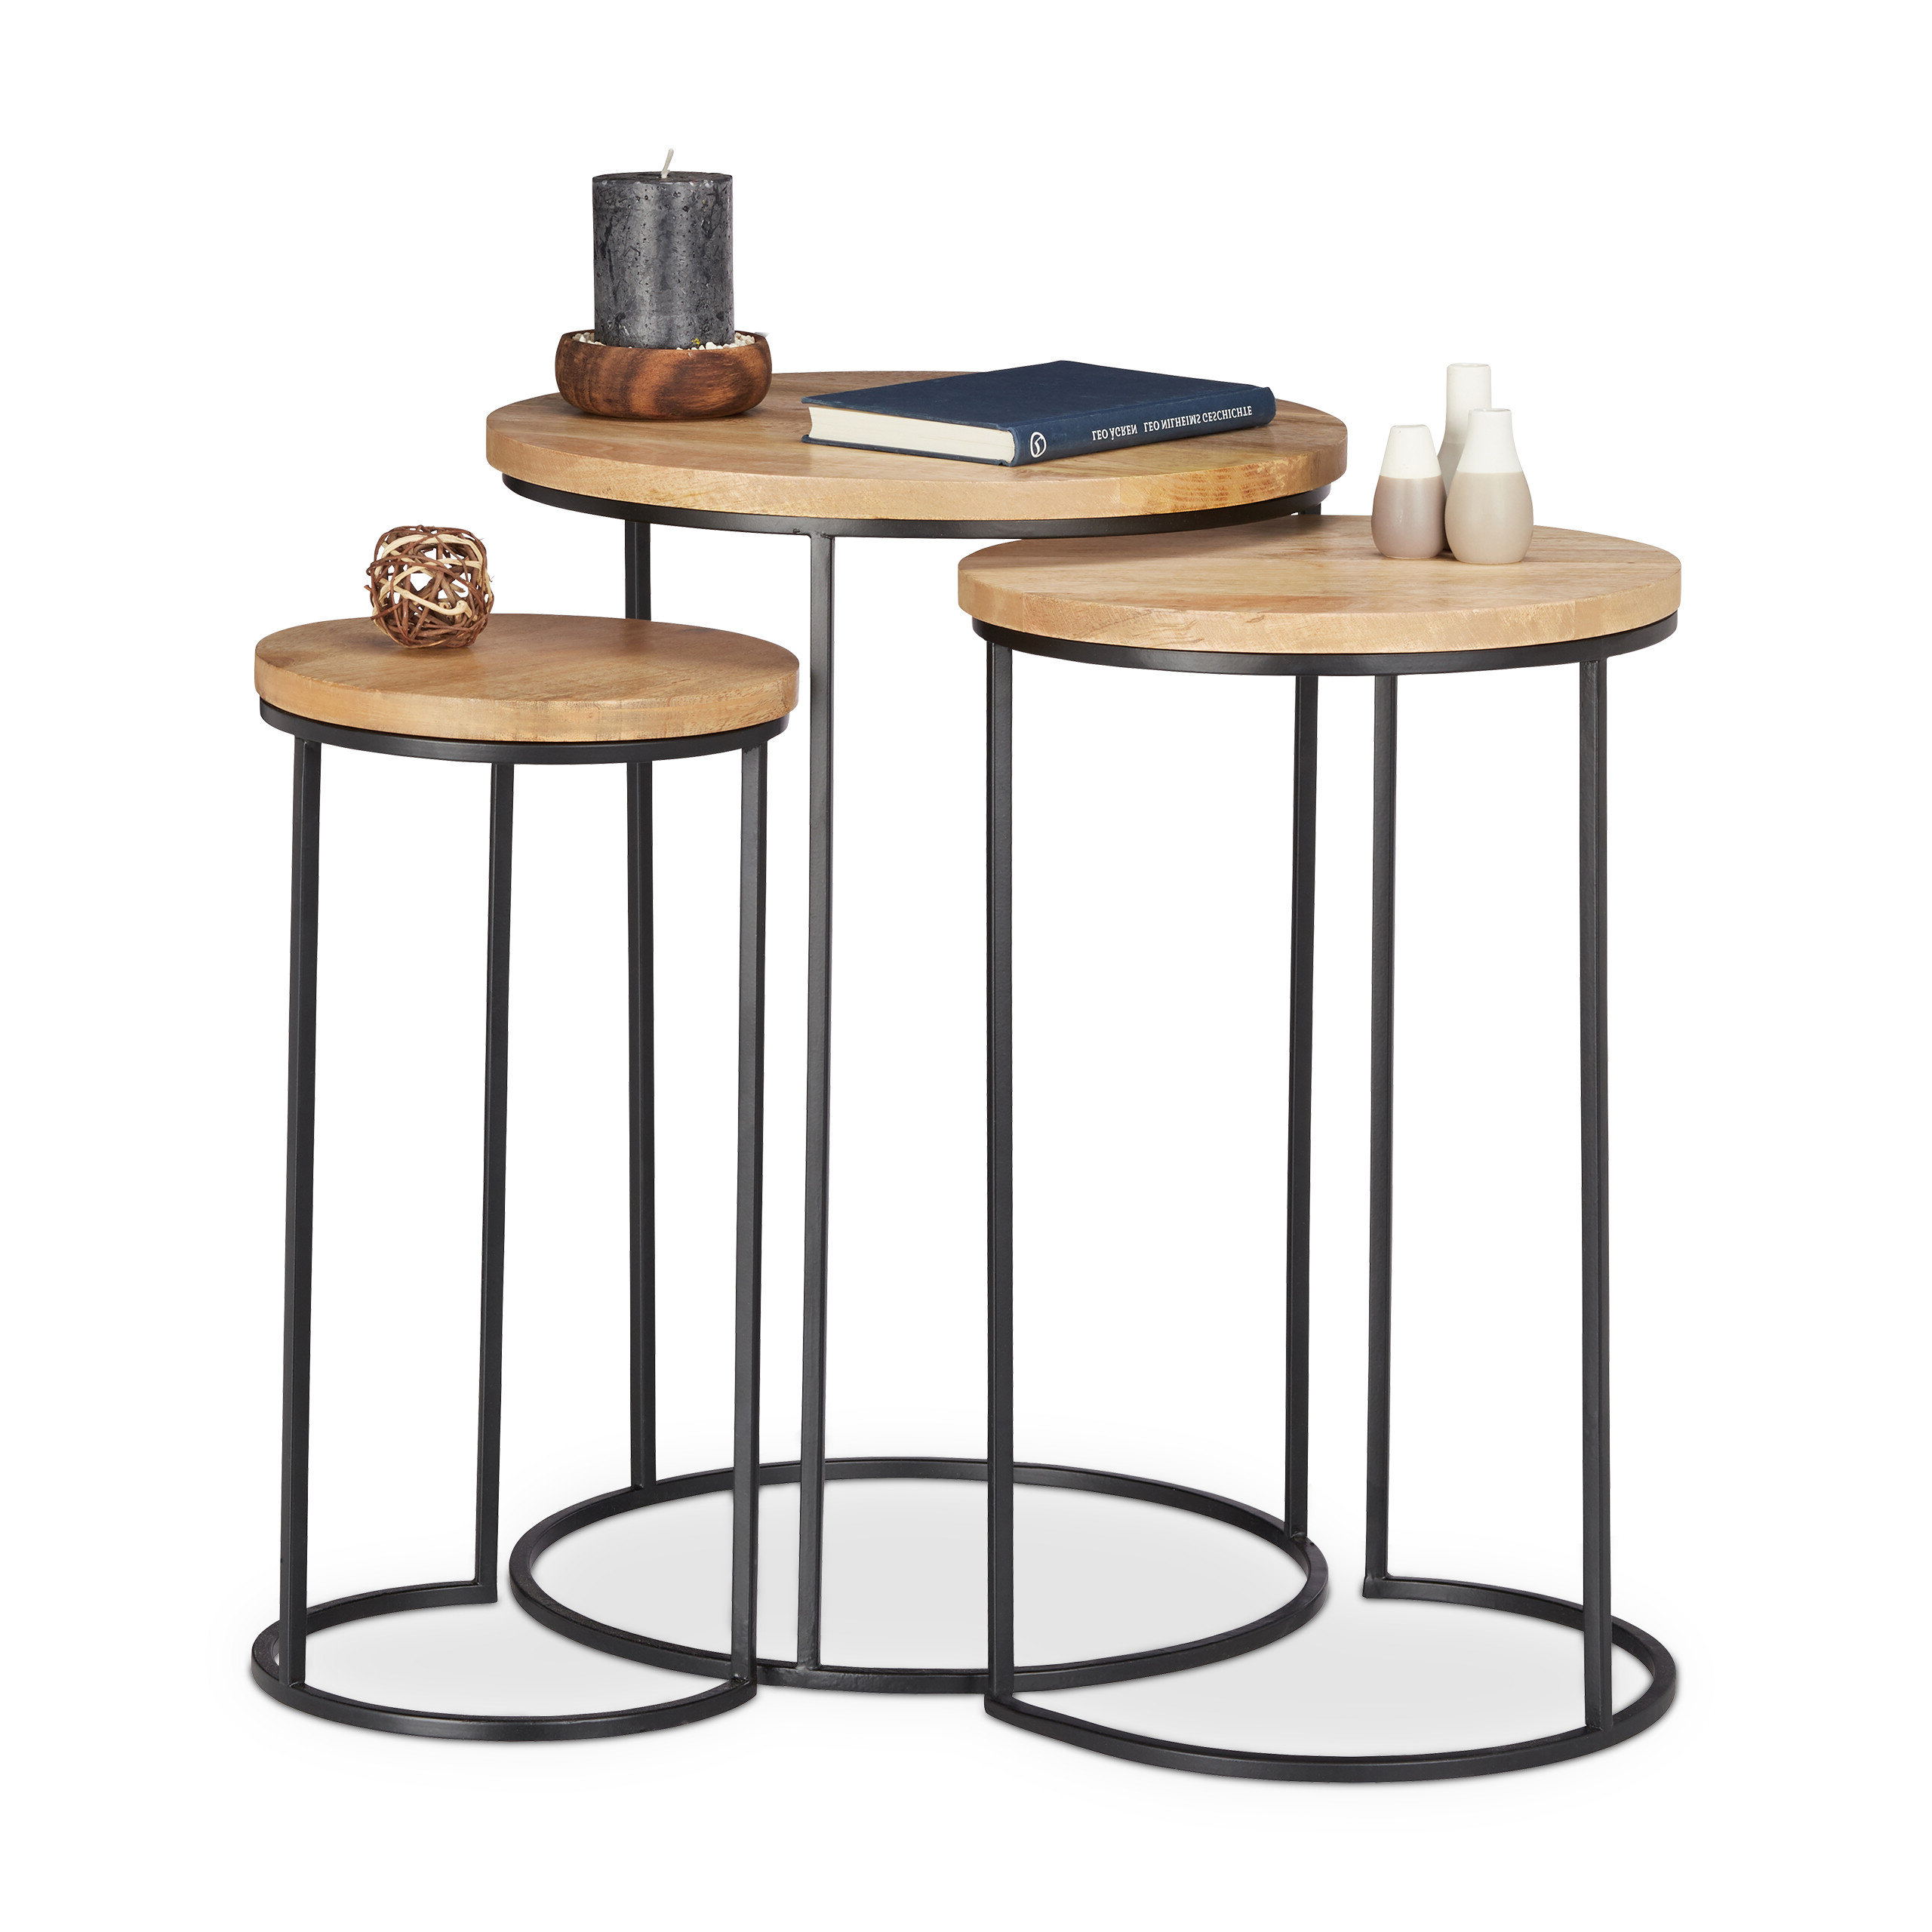 Widely Used Standwood Metal Garden Stools Intended For Mercury Row Stanwood 3 Piece Nesting Tables & Reviews (View 7 of 30)